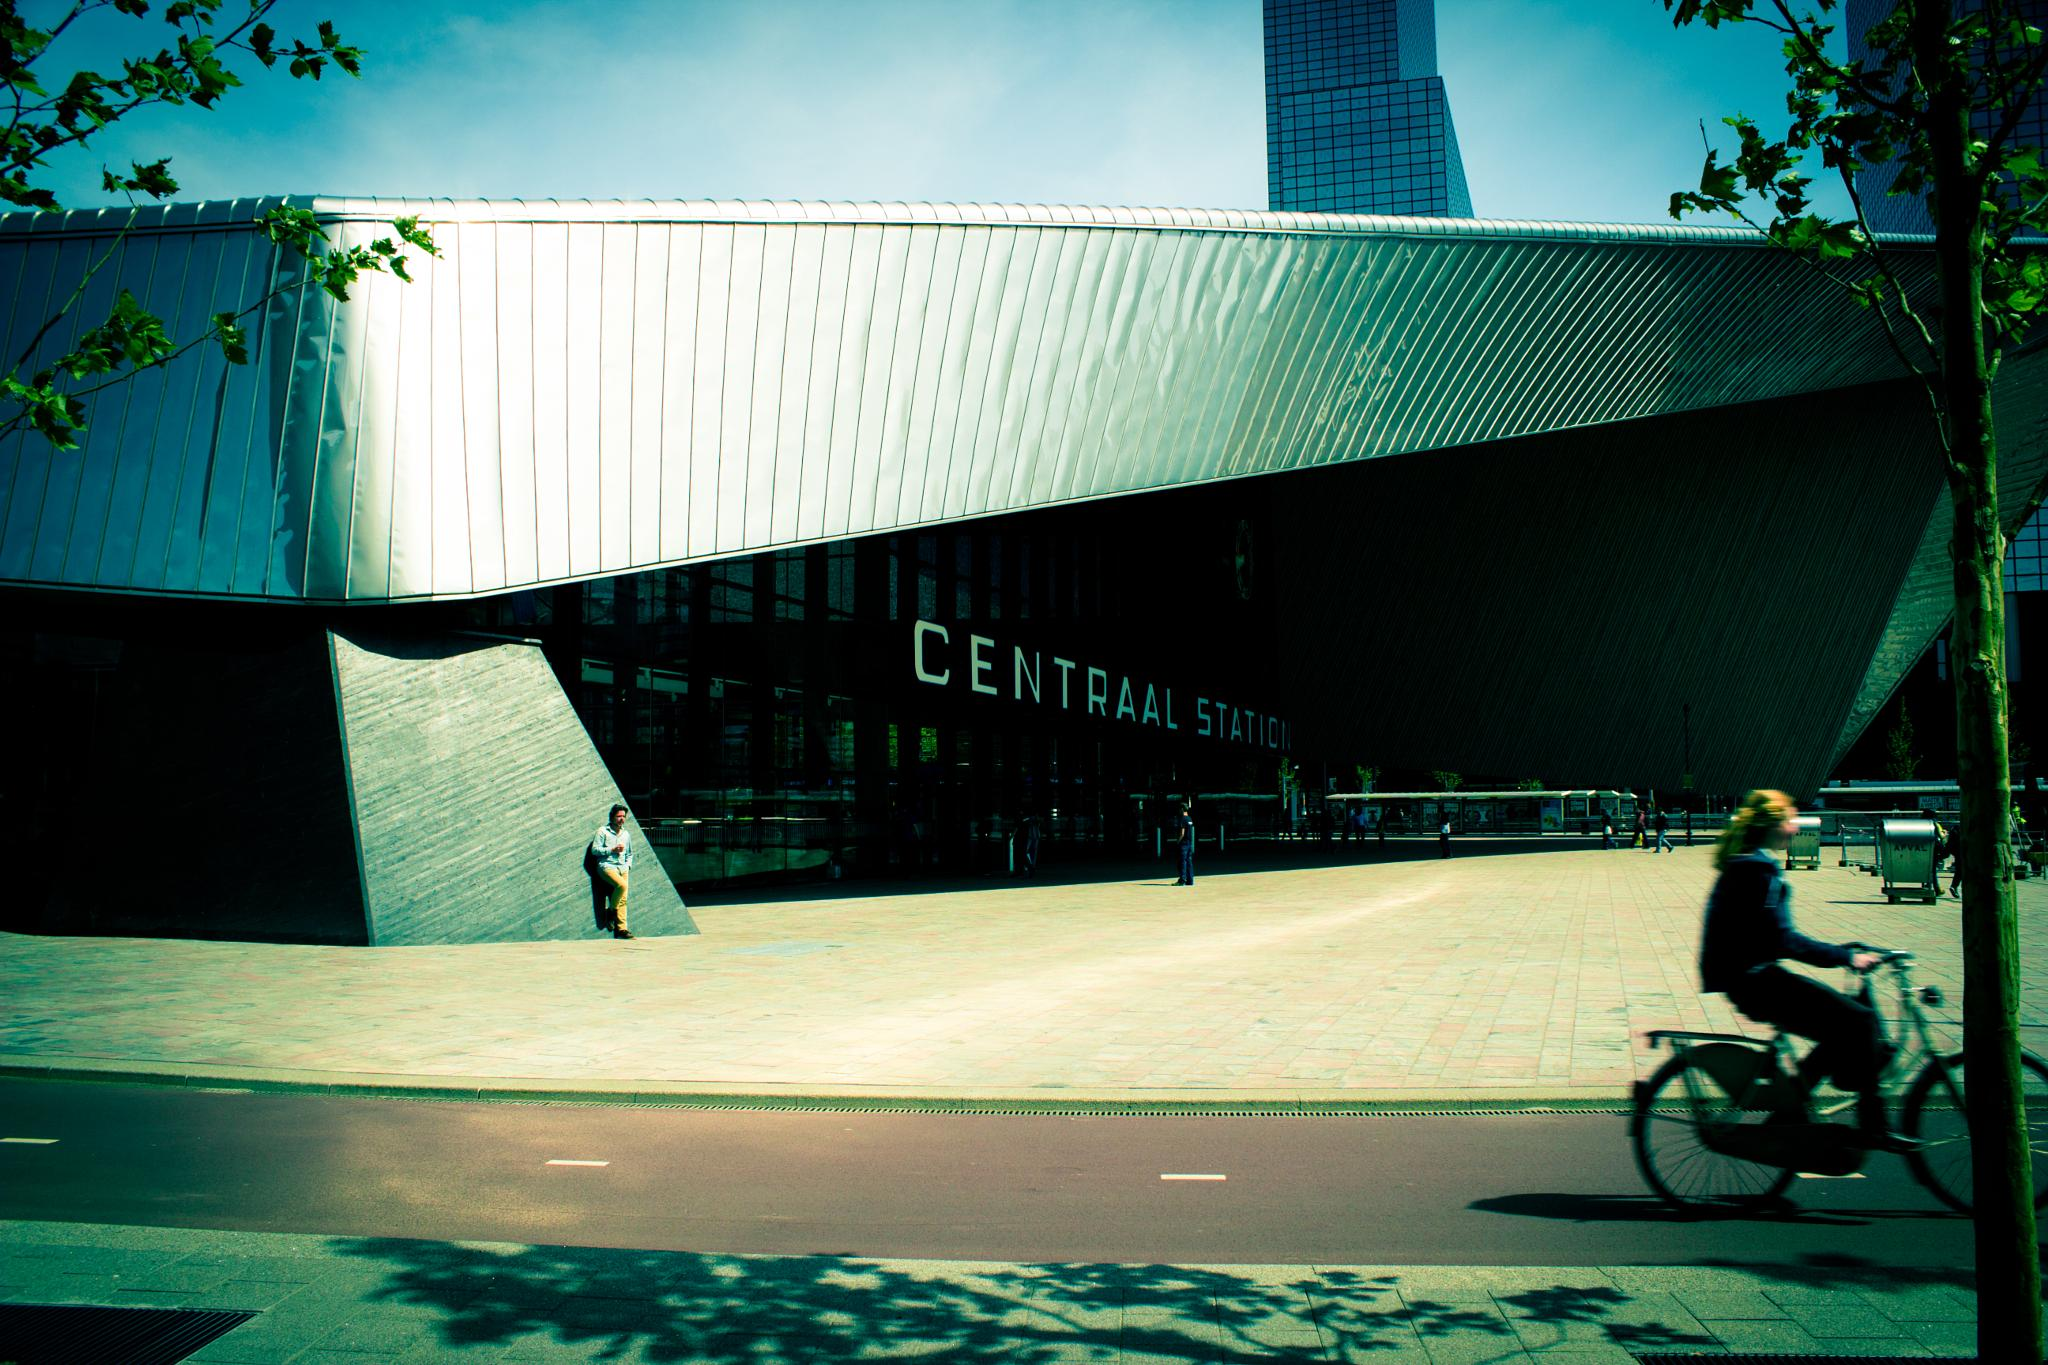 Rotterdam Central Station by richard.obbes